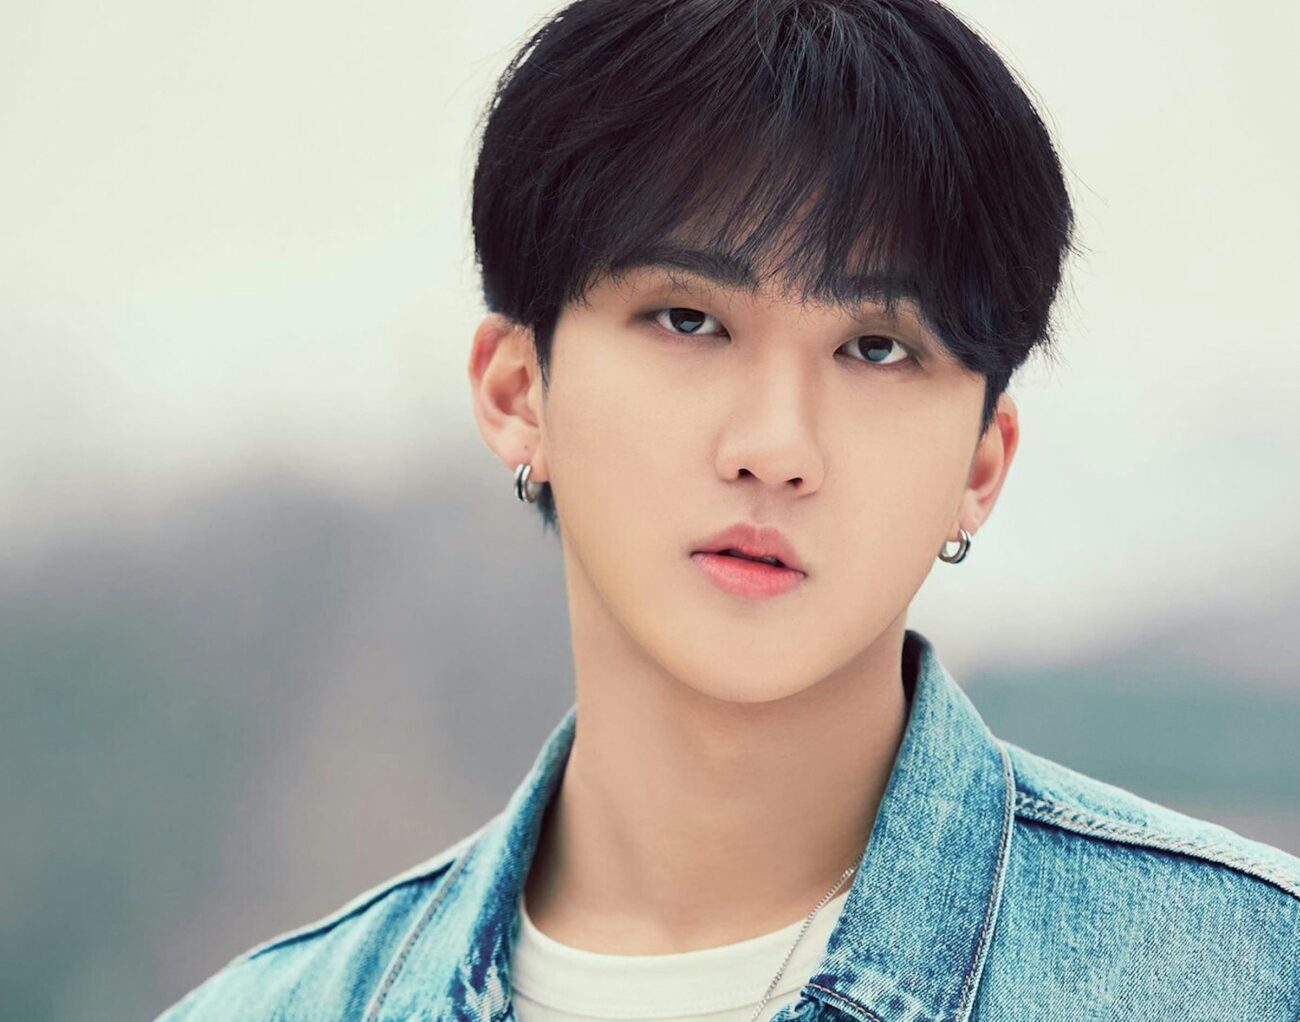 Stray Kids' Seo Changbin turns twenty-two today! See the official announcement and how fans all over the world are celebrating the K-pop star's birthday.